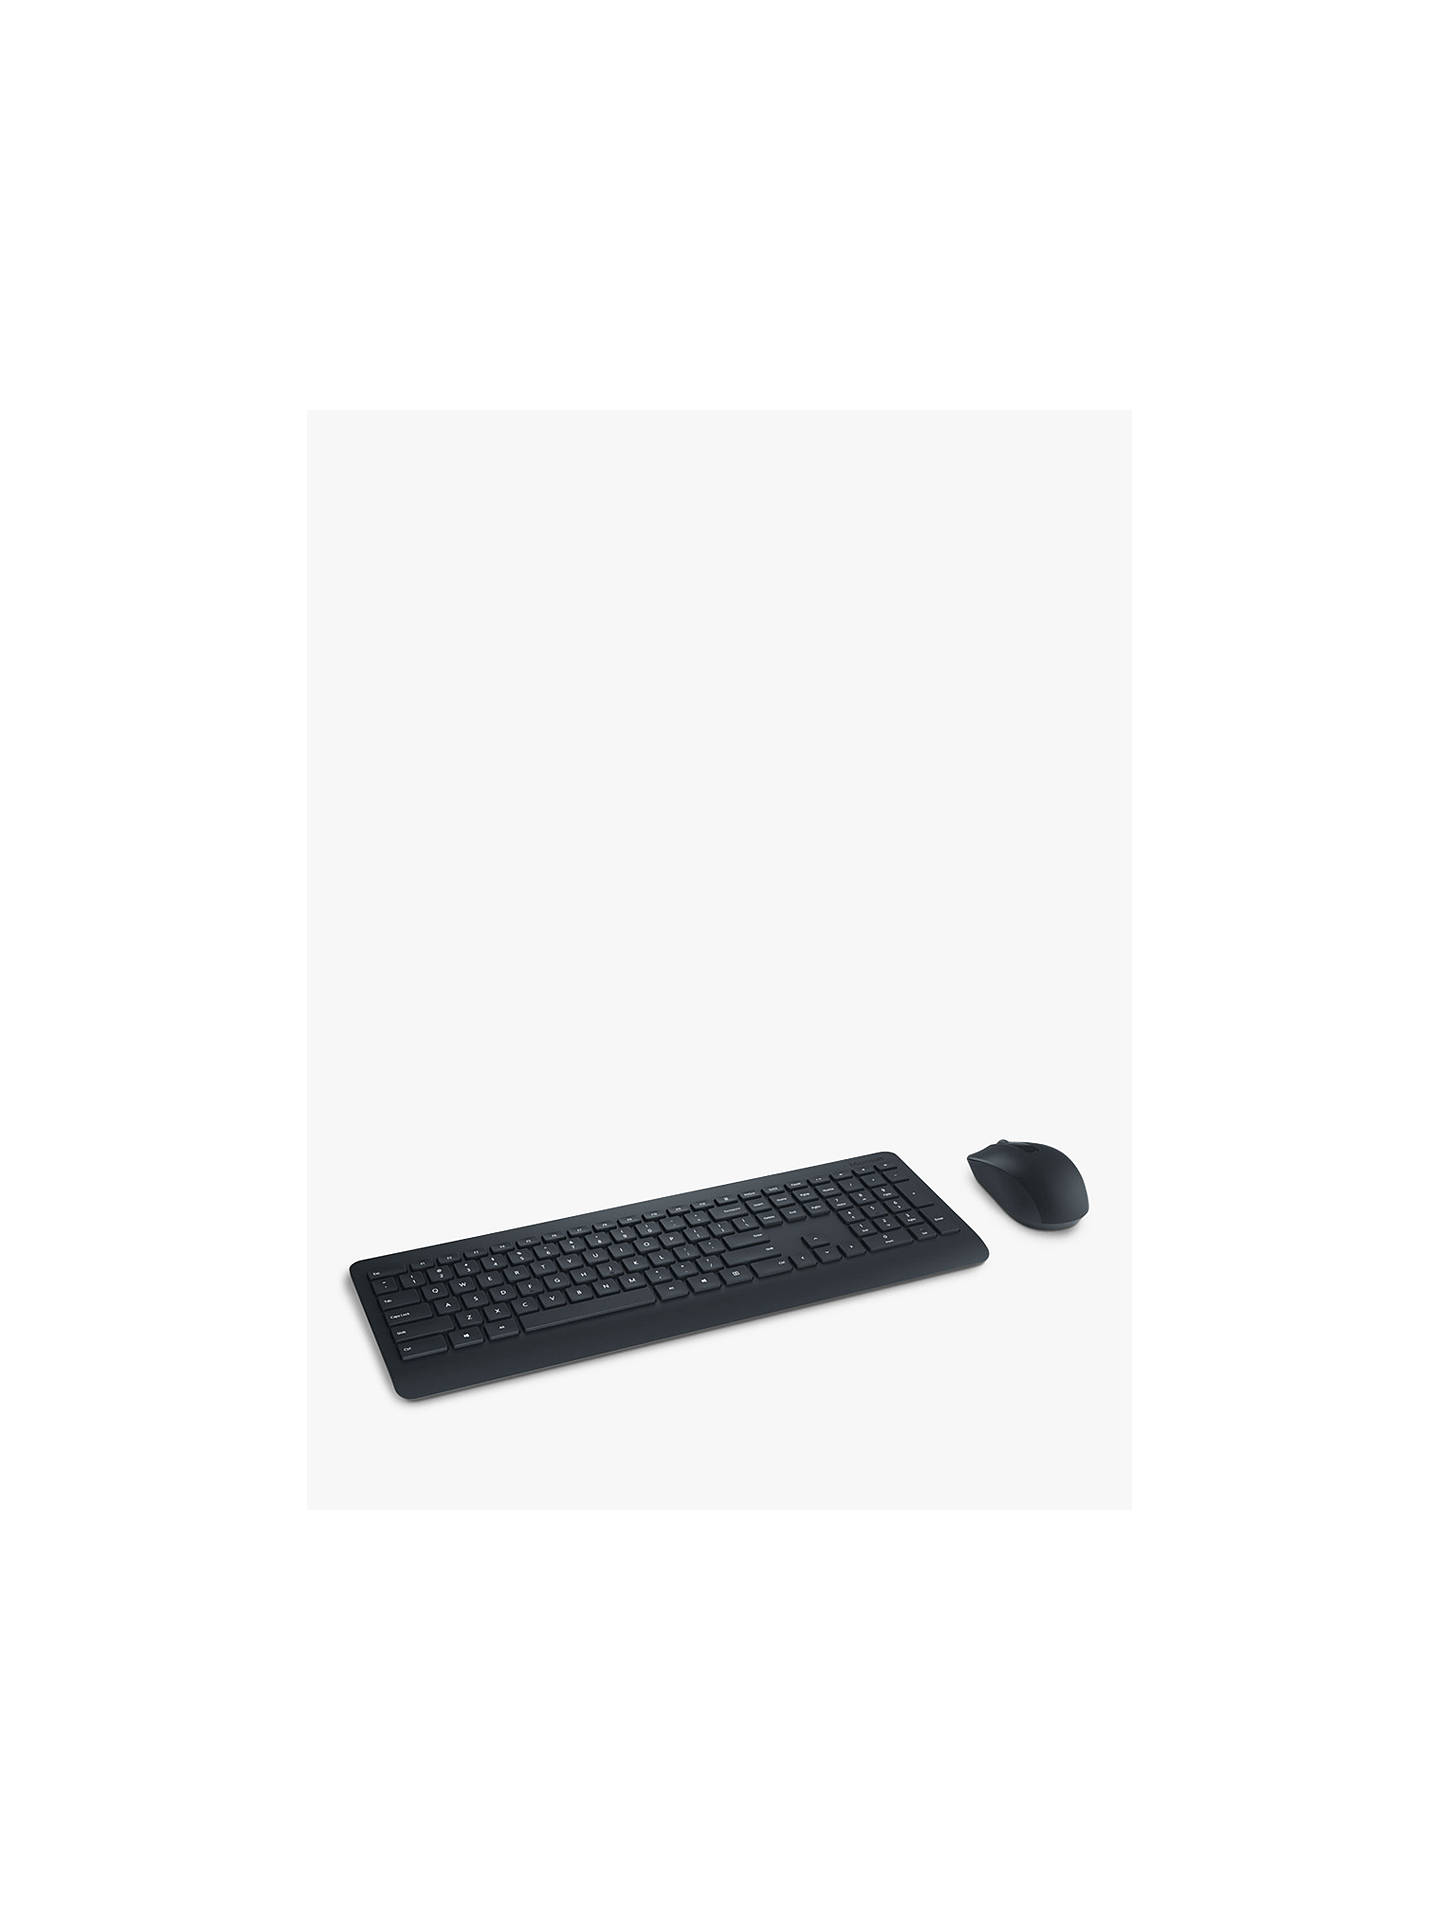 BuyMicrosoft 900 Wireless Desktop Keyboard and Mouse, Black Online at johnlewis.com